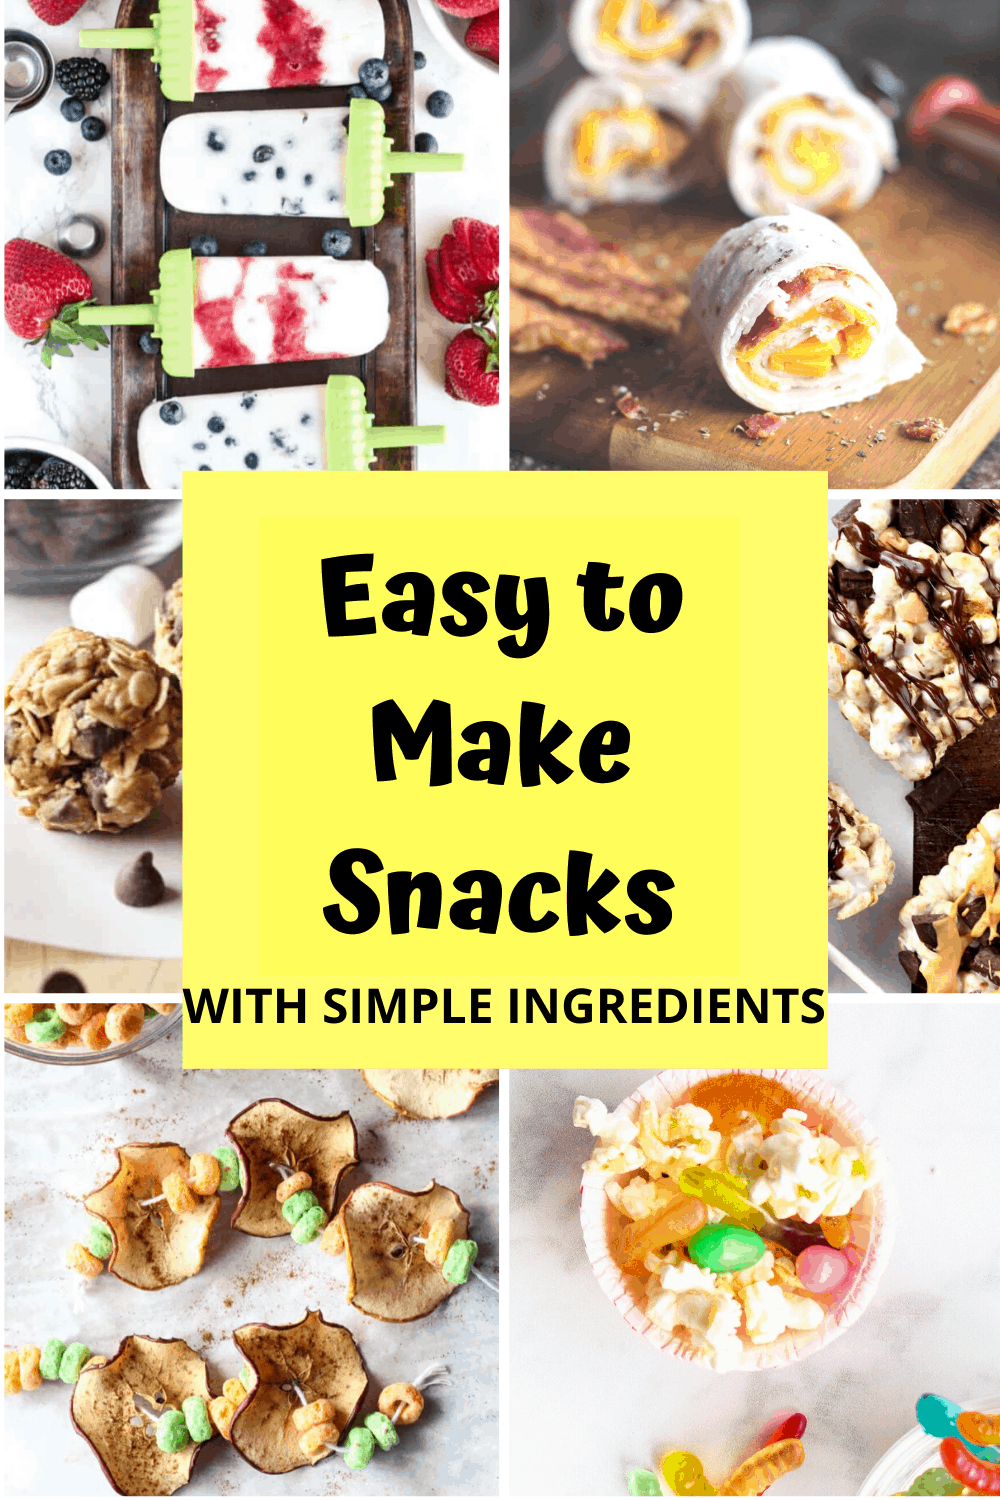 Easy to Make Snacks with Simple Ingredients